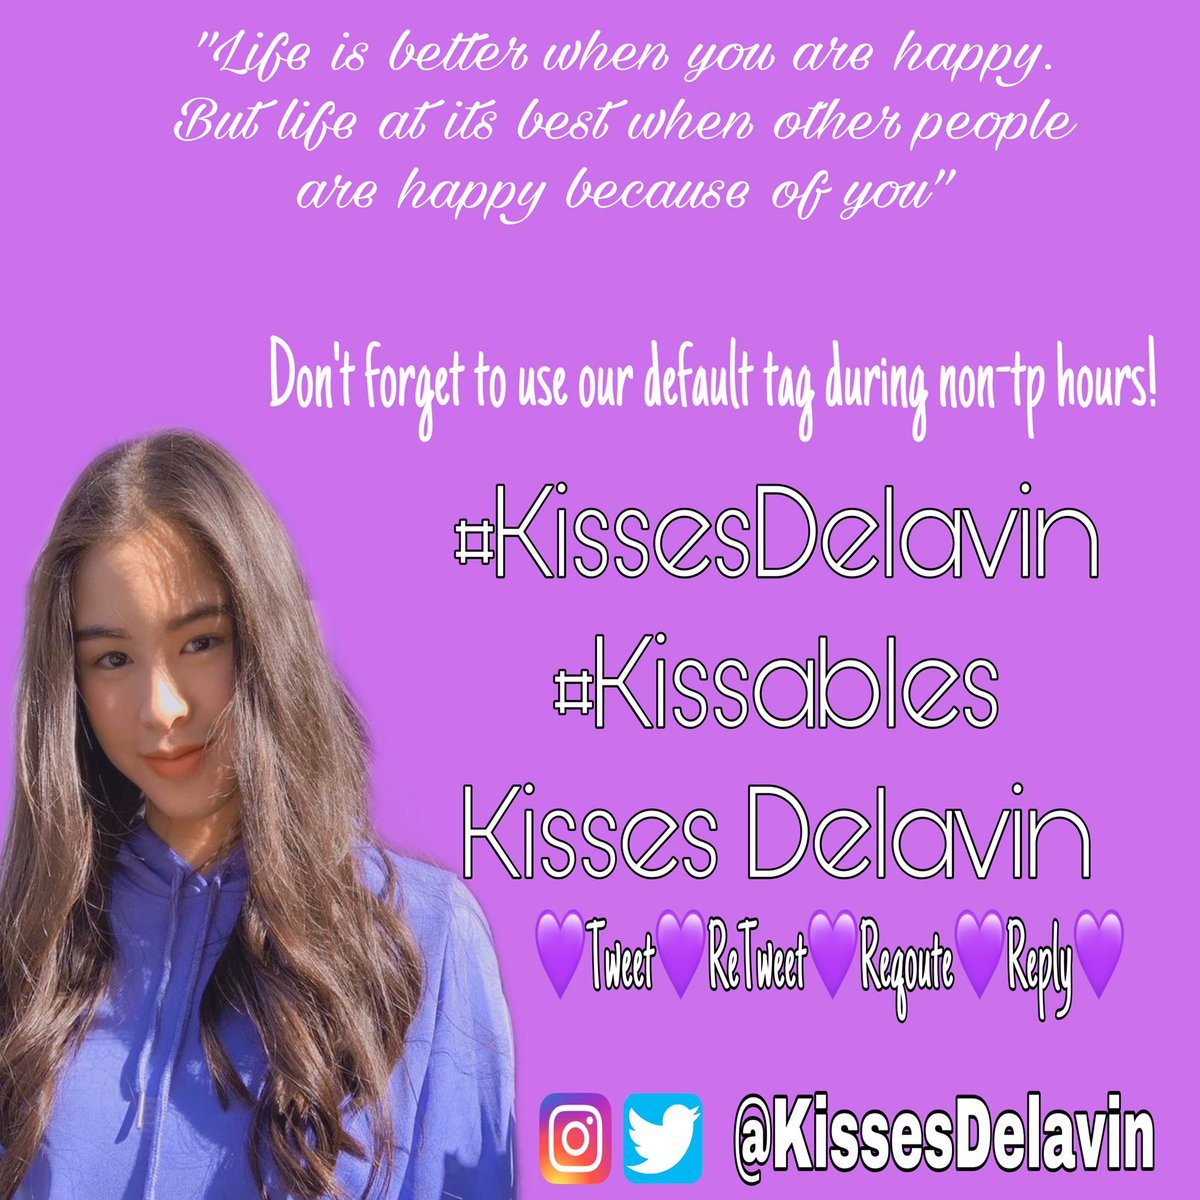 Life is better when you are happy. But life at its best when other people are happy because of you. Good Morning!  @KissesDelavin  #KissesDelavin | Kisses Delavin #Kissablespic.twitter.com/4hpc880kSK